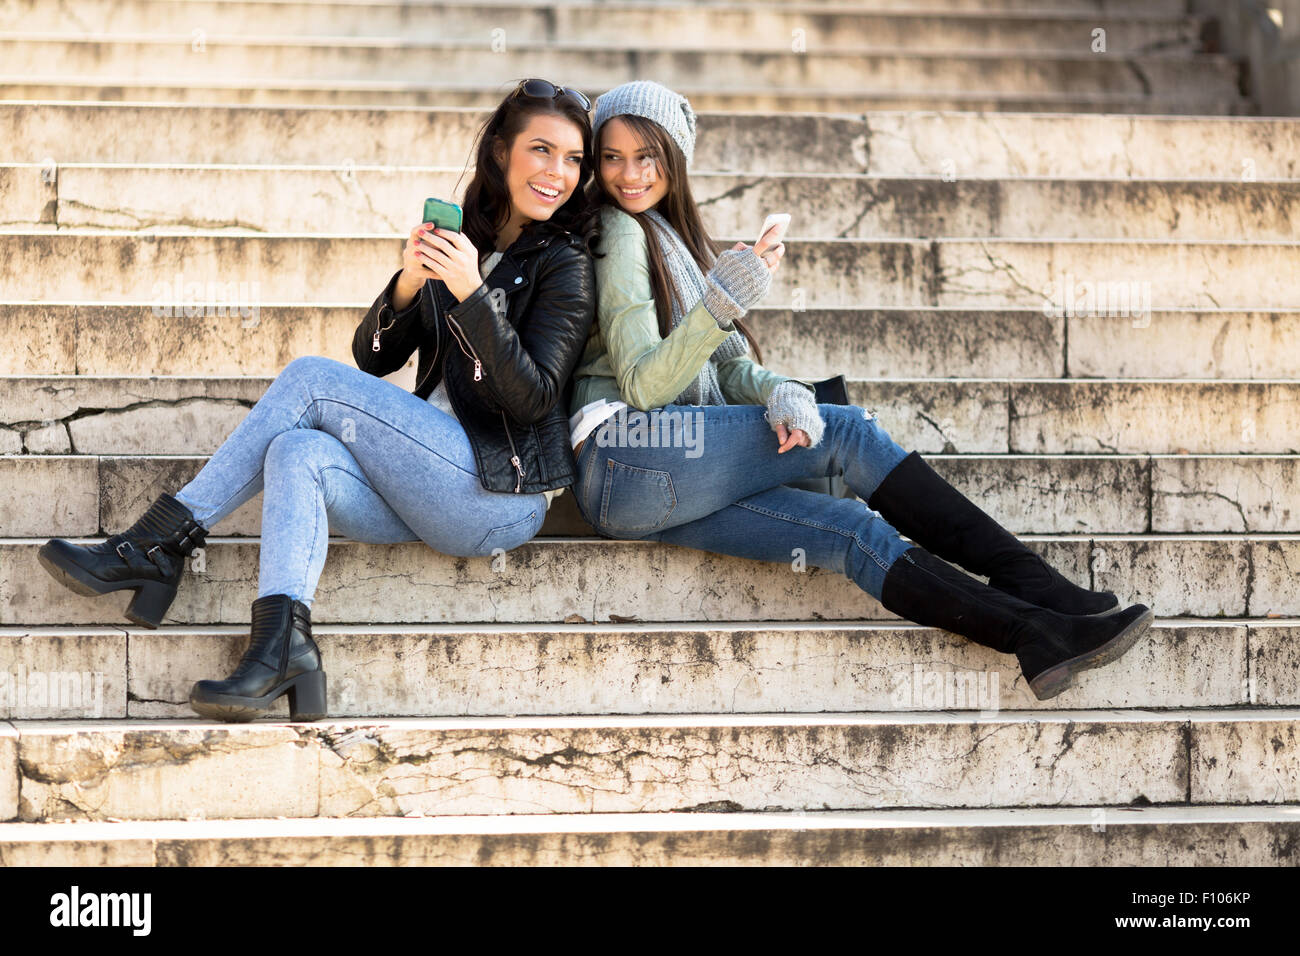 Two young women leaning against each other on stairs and holding cell phones - Stock Image